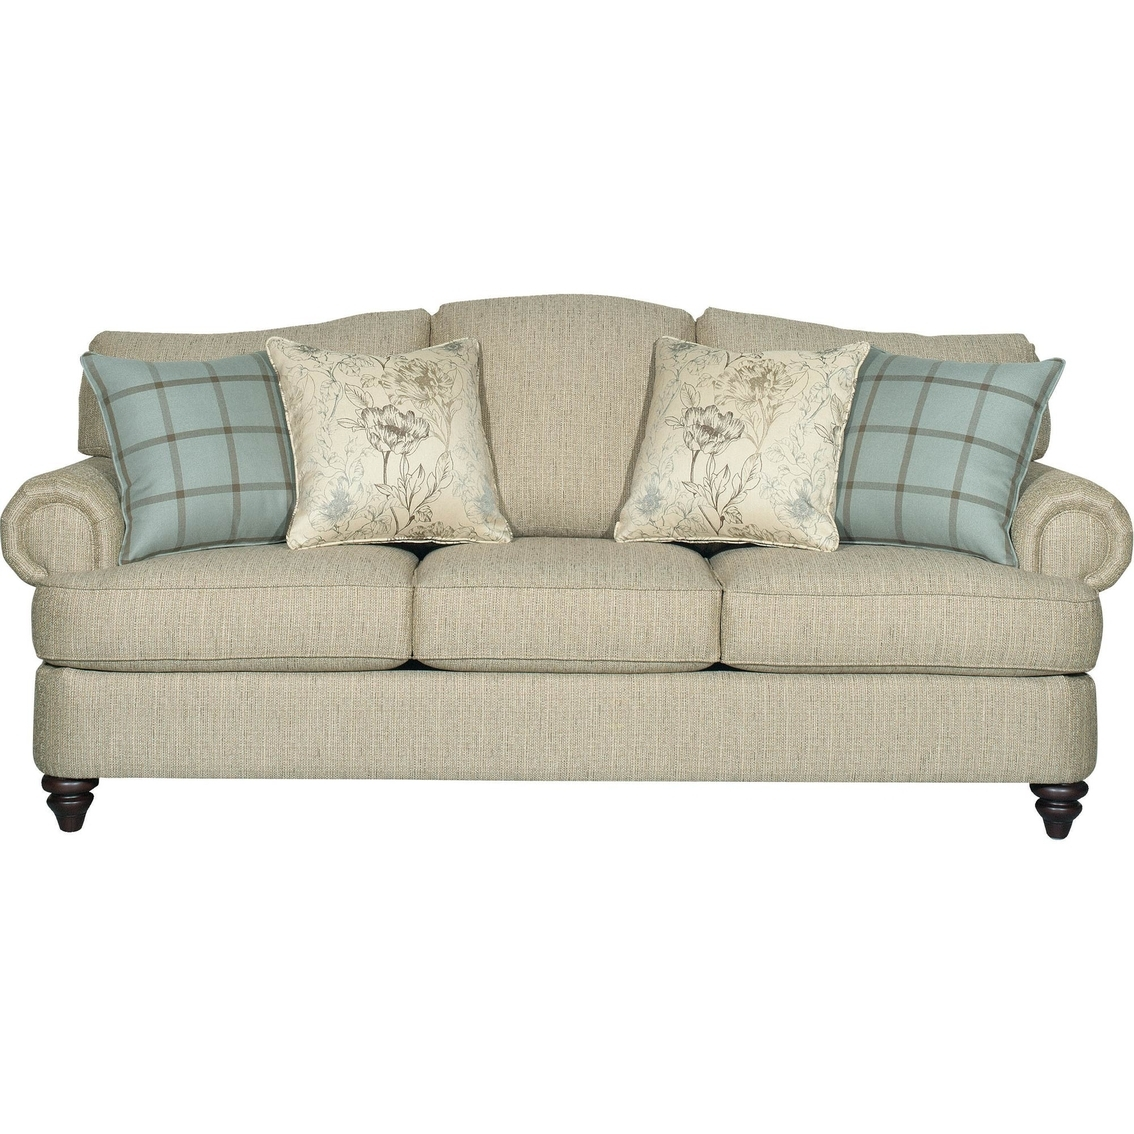 Bassett Xpress2u Barclay Sofa Sofas Couches Home For Bassett Sofa Bed (View 9 of 15)